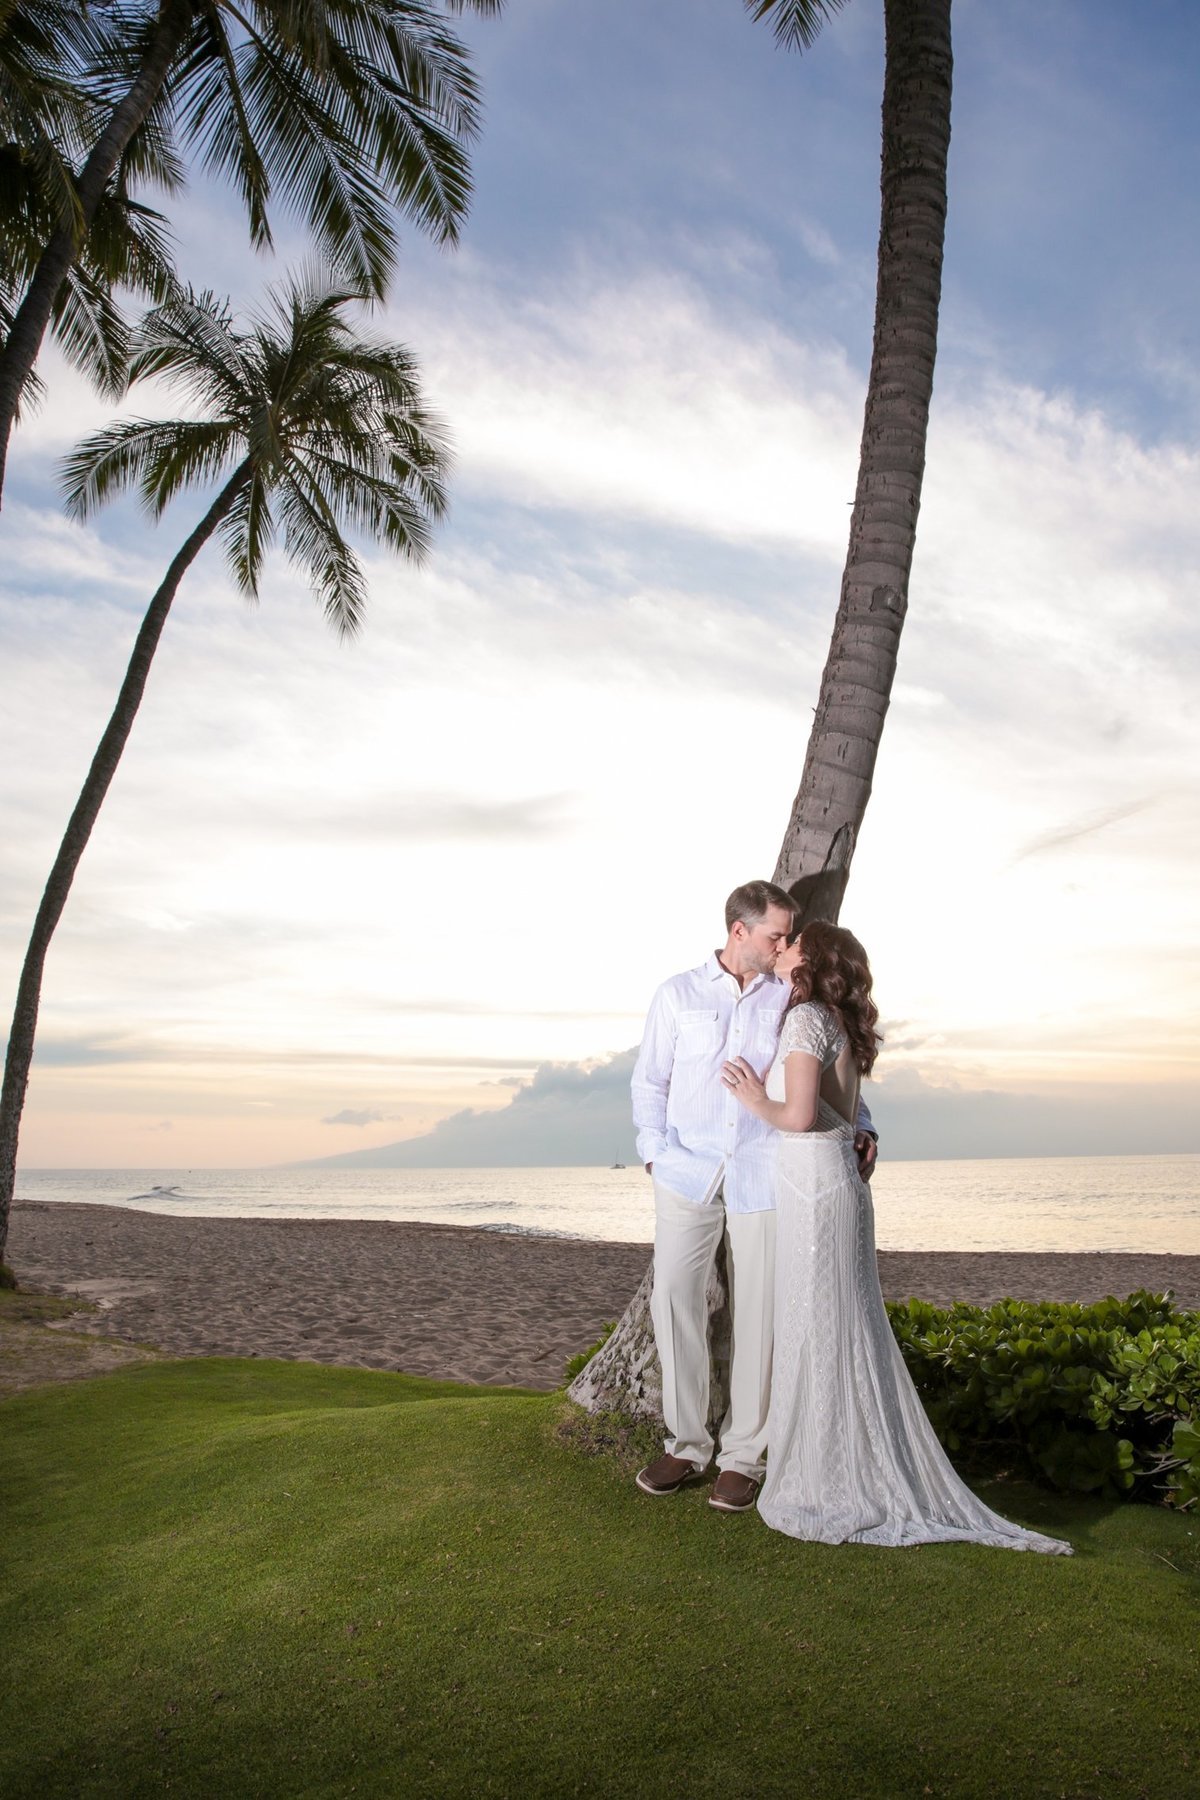 Maui Wedding Photography   at The Westin Maui Resort and Spa  with the bride and groom at sunset